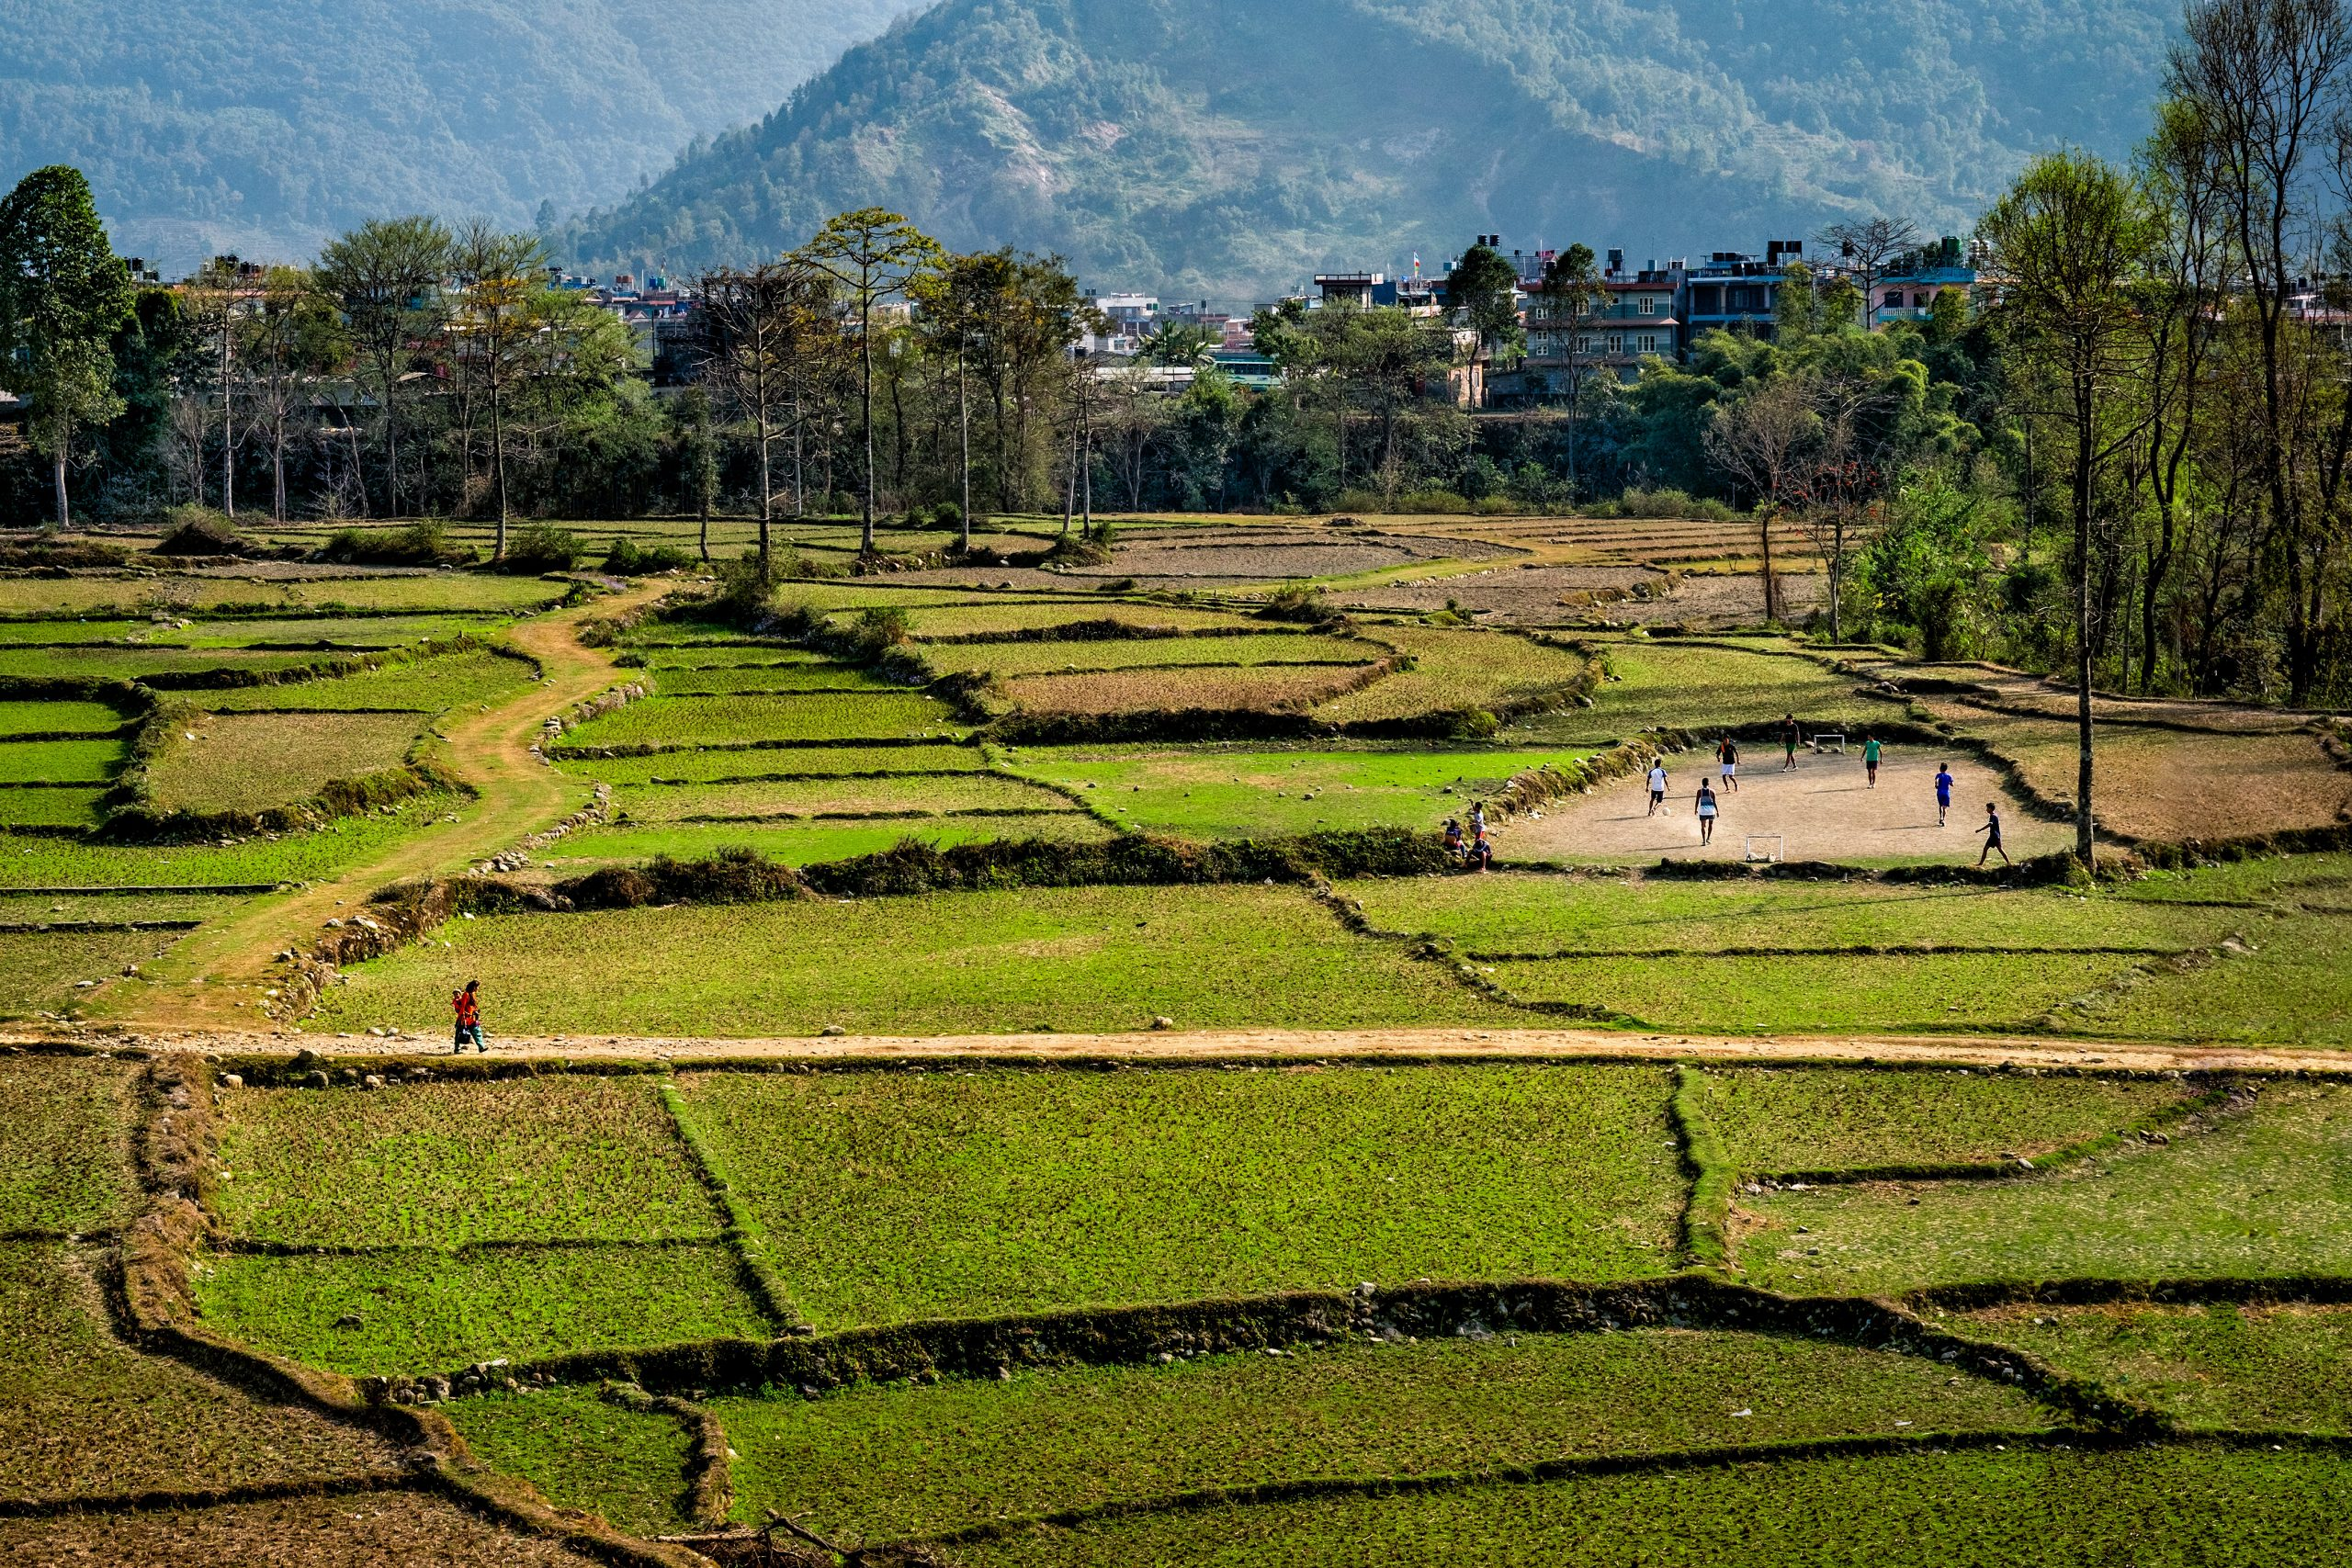 Nepalese farm land and locals playing soccer in the middle